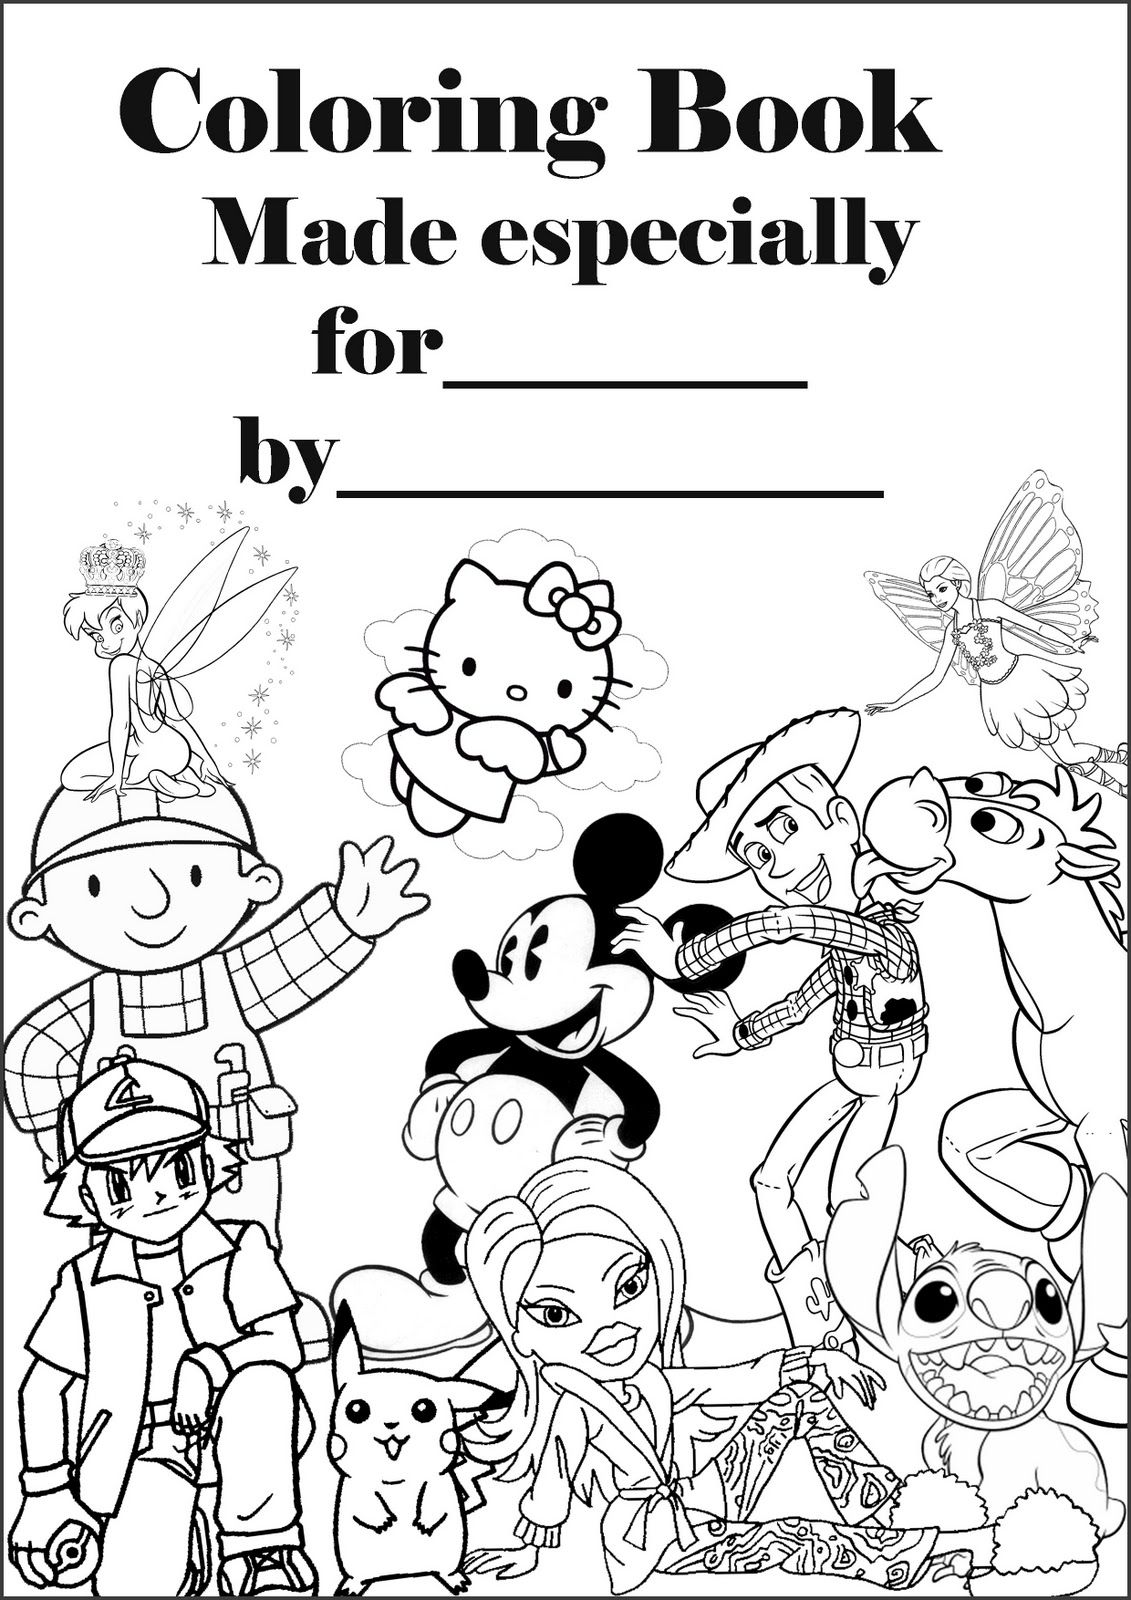 Make Your Own Coloring Book Print This Cover And A Dozen Or So Other Coloring Pages Then